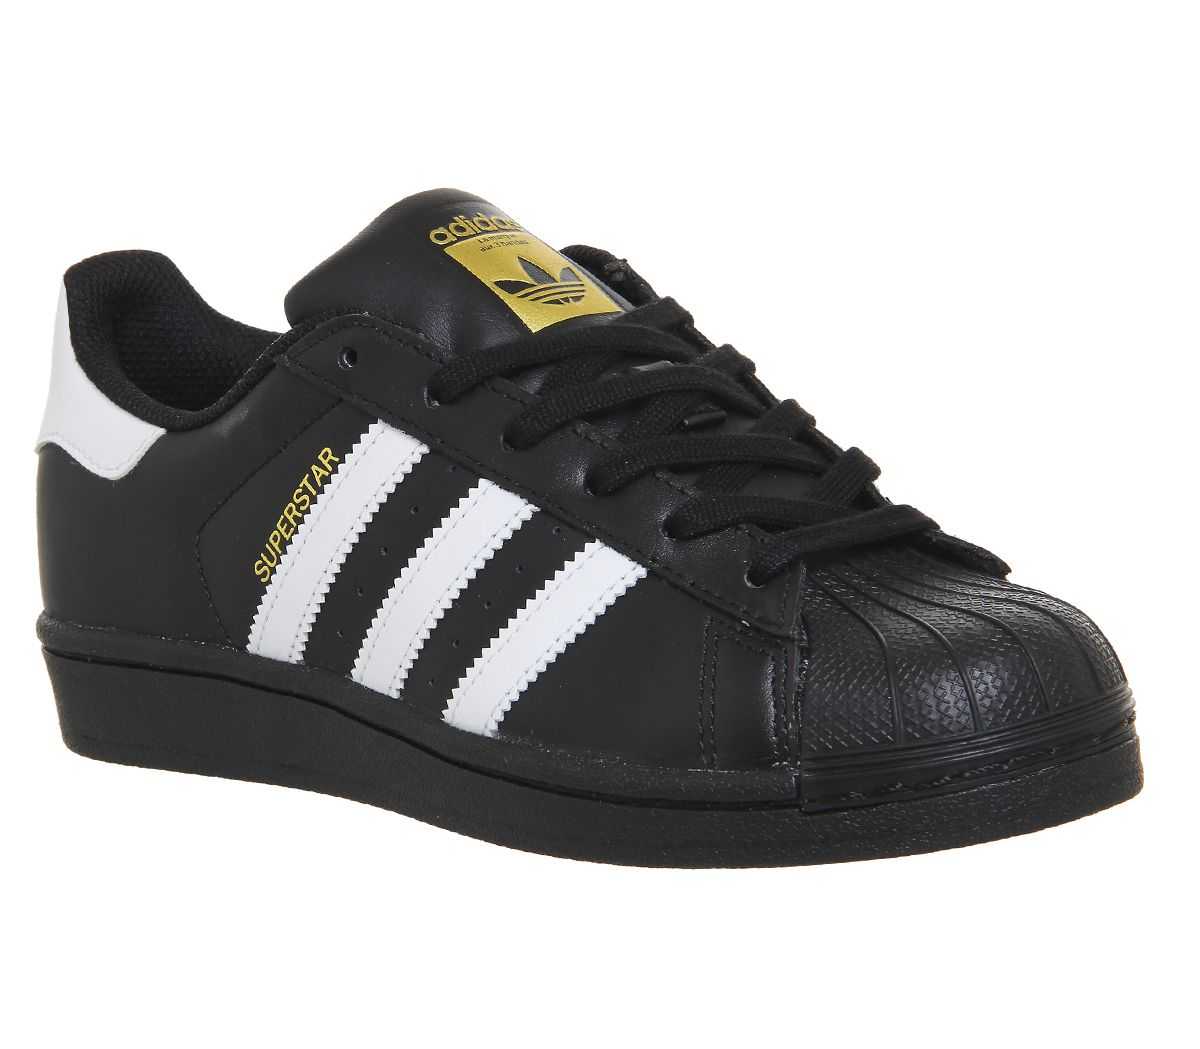 adidas superstar office shoes